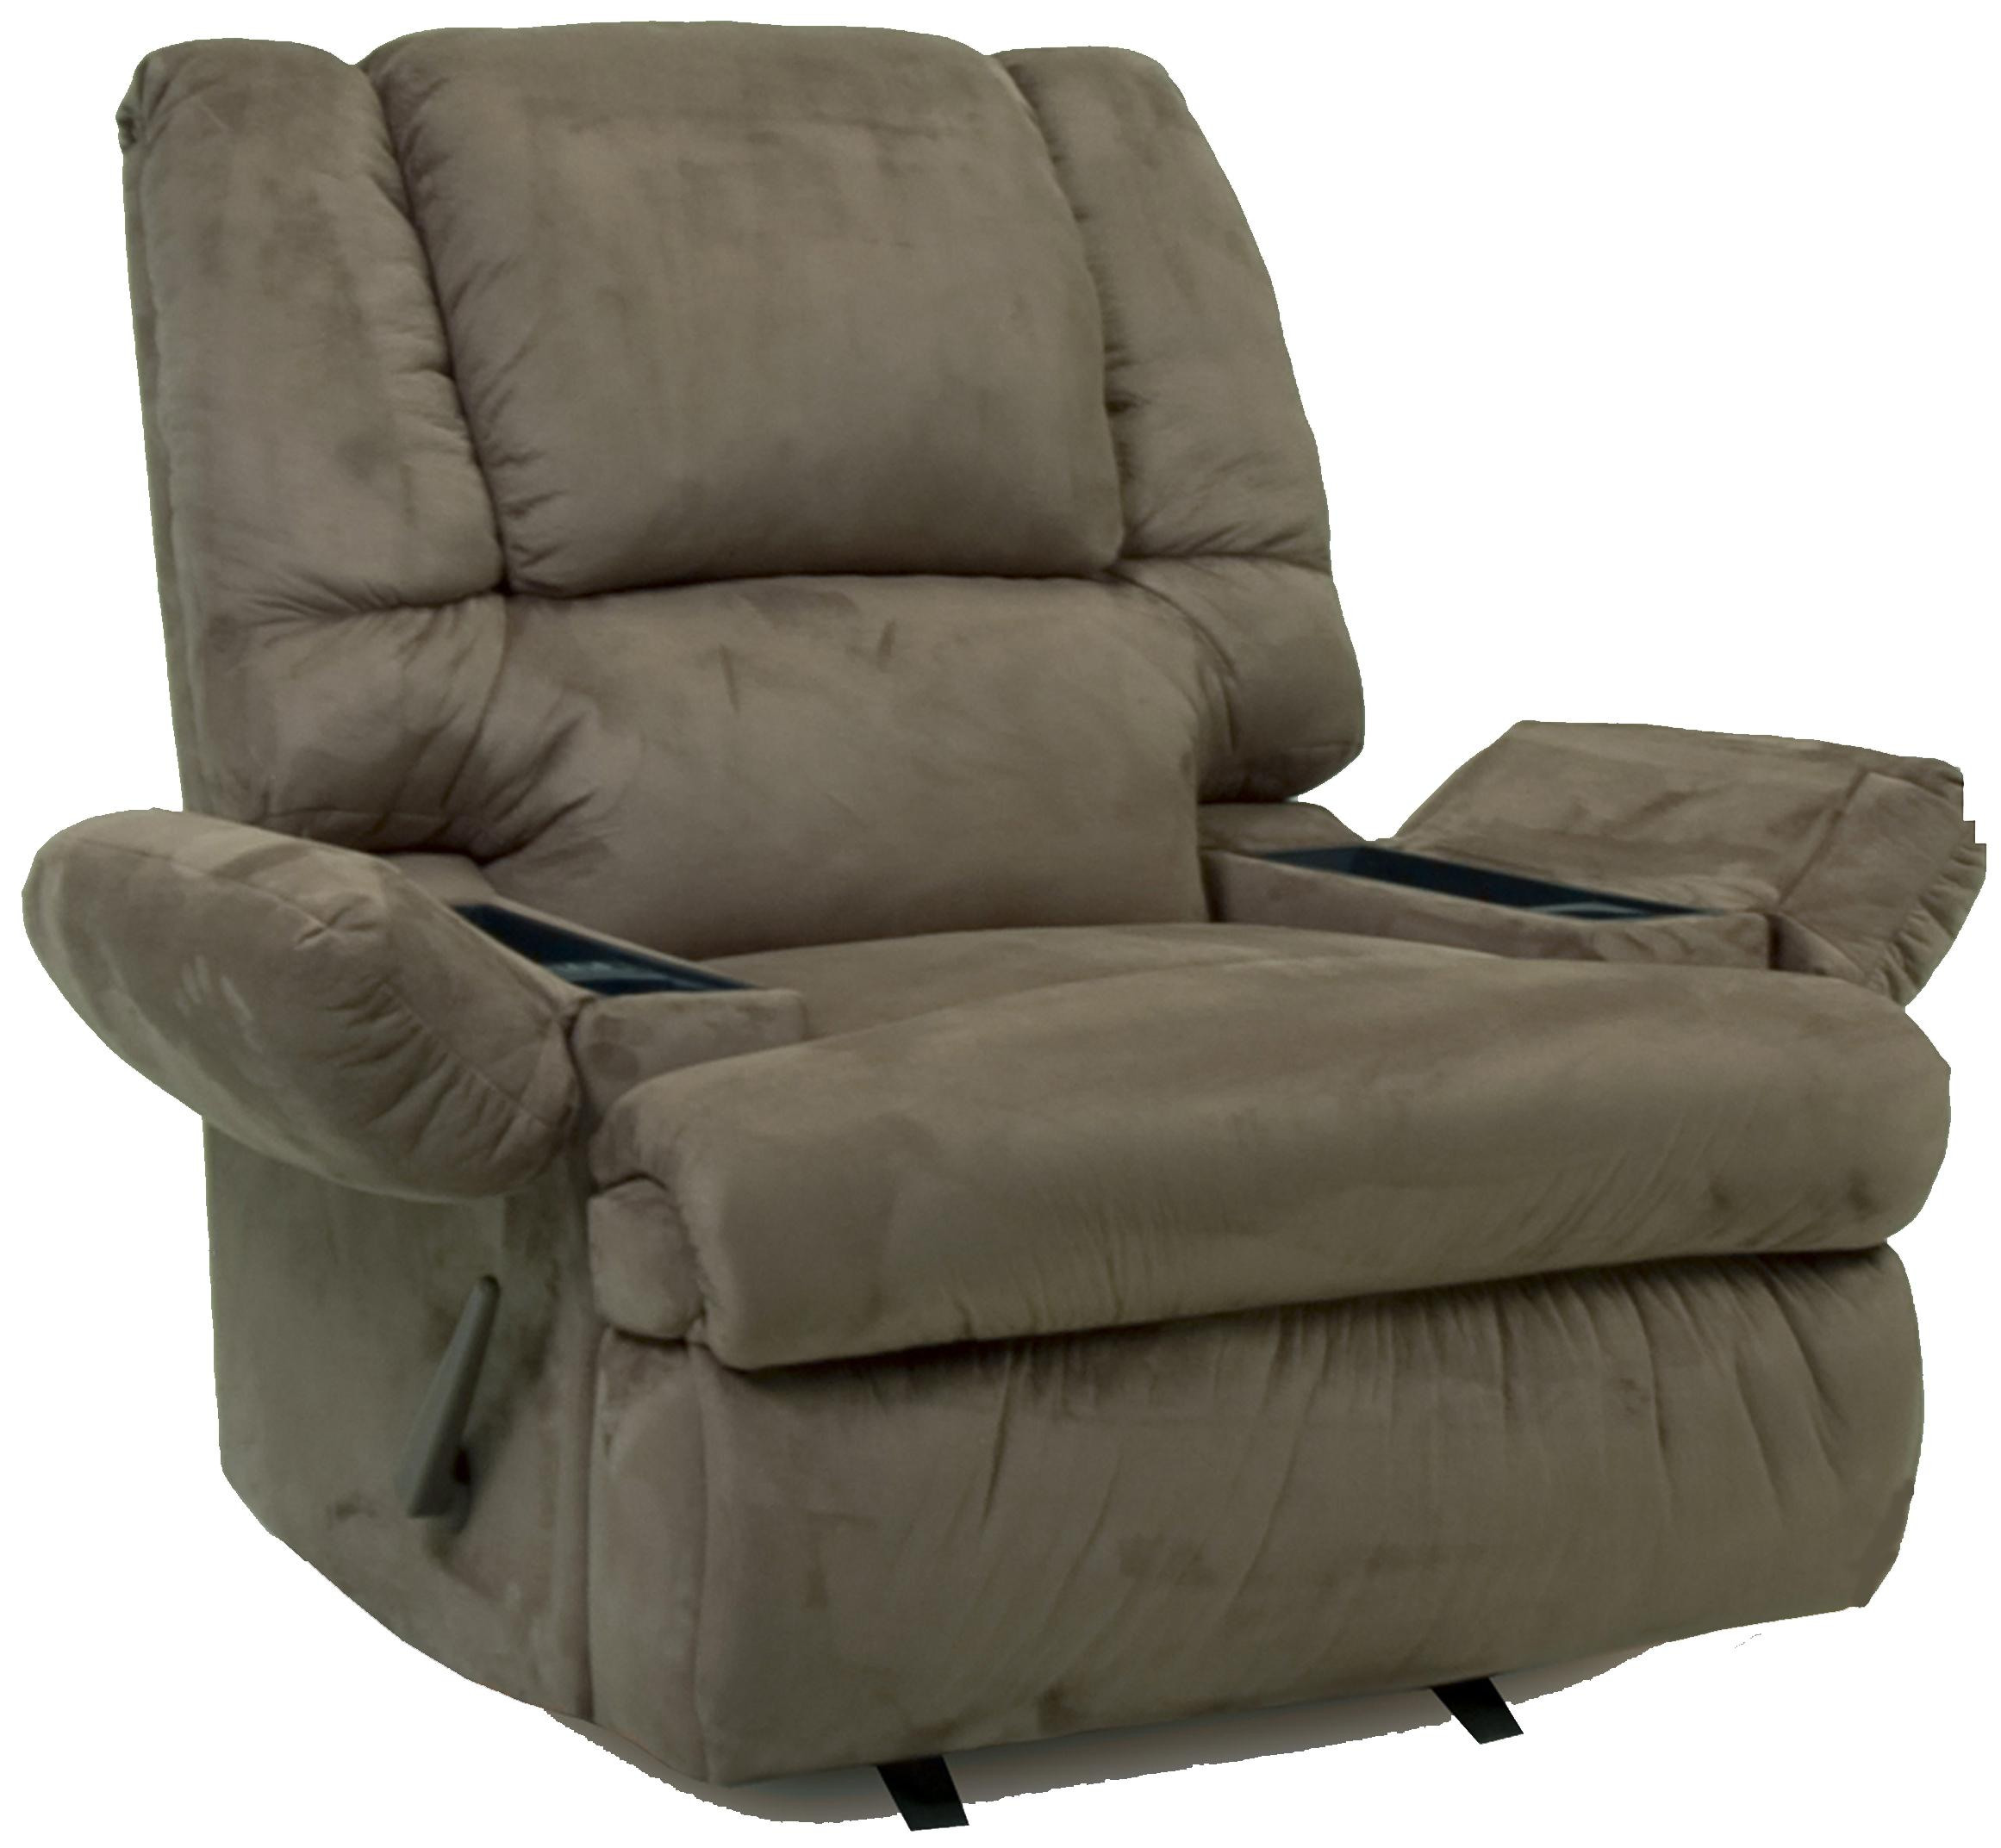 Clayton Rocker Recliner by Franklin at Lagniappe Home Store